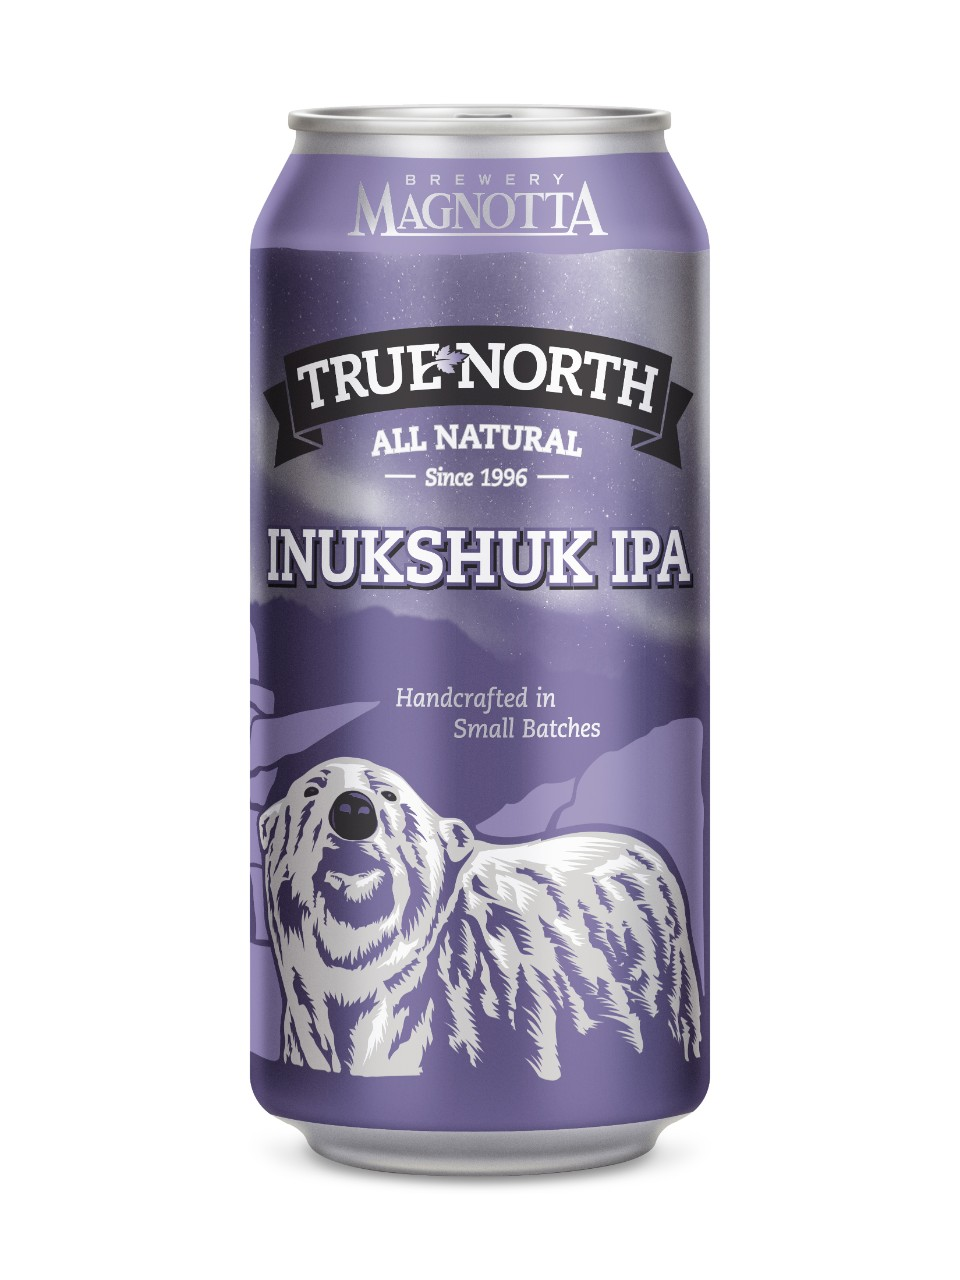 Magnotta Brewery True North Inukshuk IPA